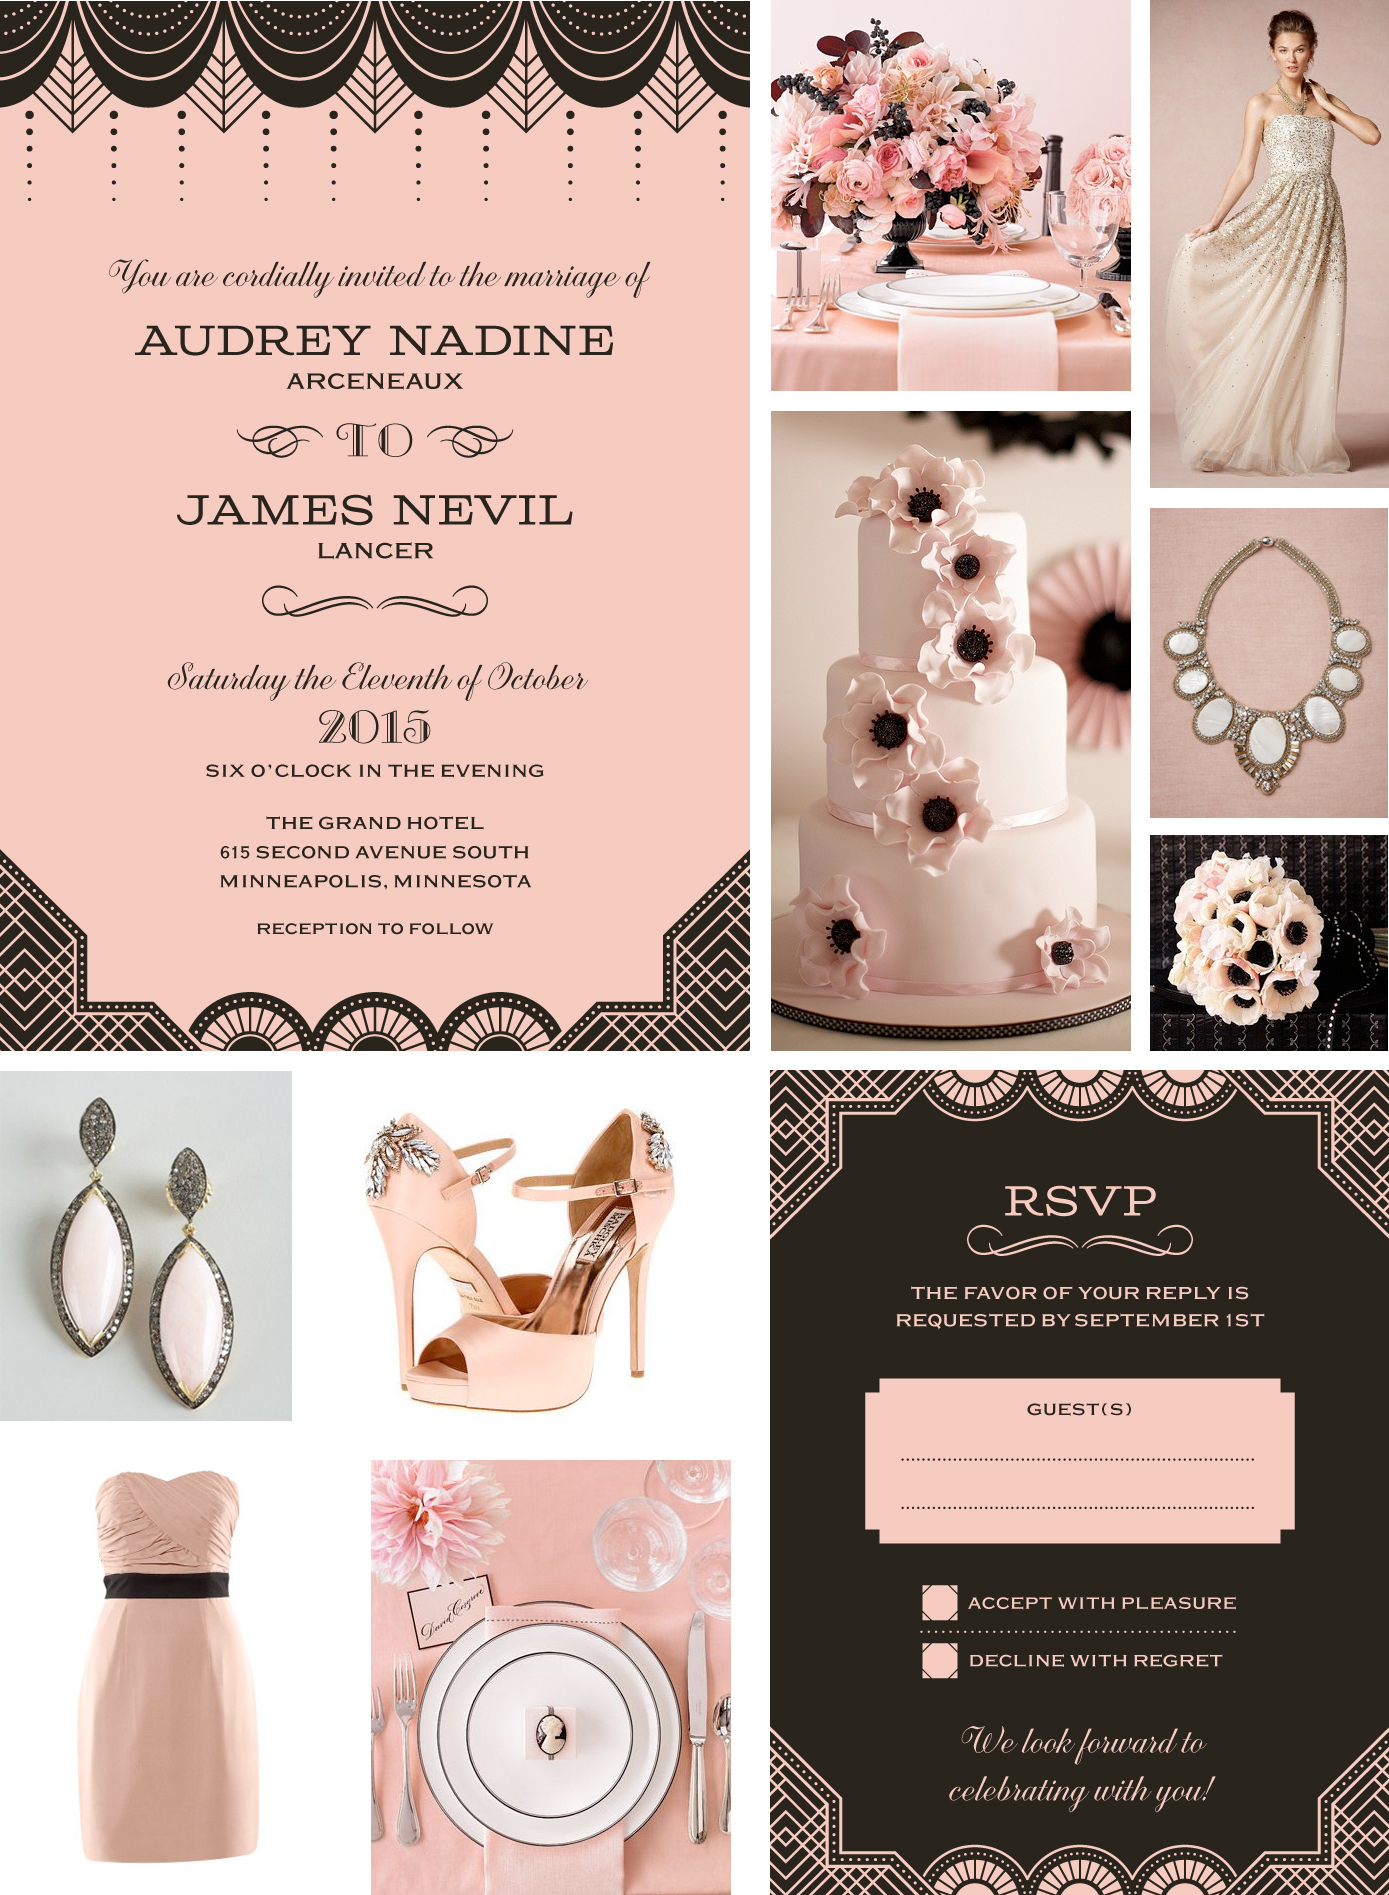 Blush Pink & Black Wedding | Design Loves Weddings